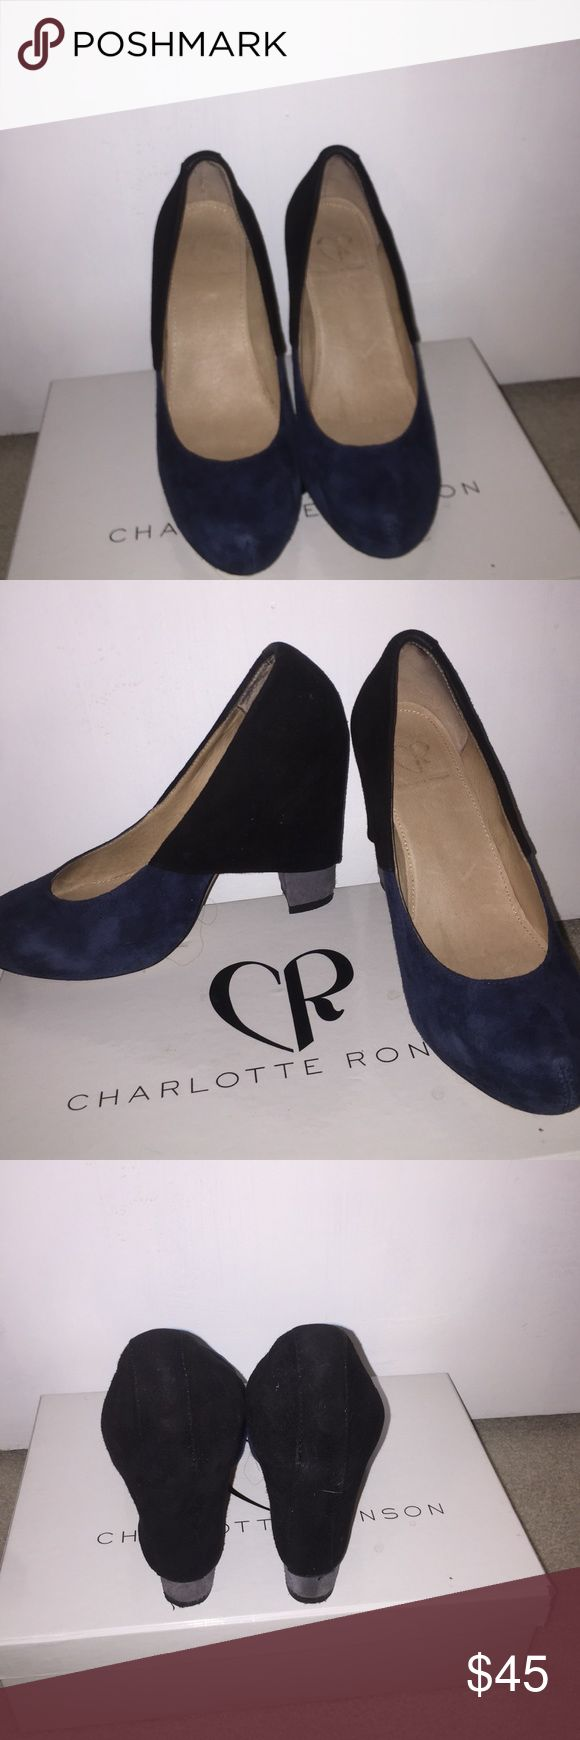 "Charlotte Ronson pumps Navy/black/gray suede pumps. Some wear and tear. 4"". More pics available. Charlotte Ronson Shoes Heels"